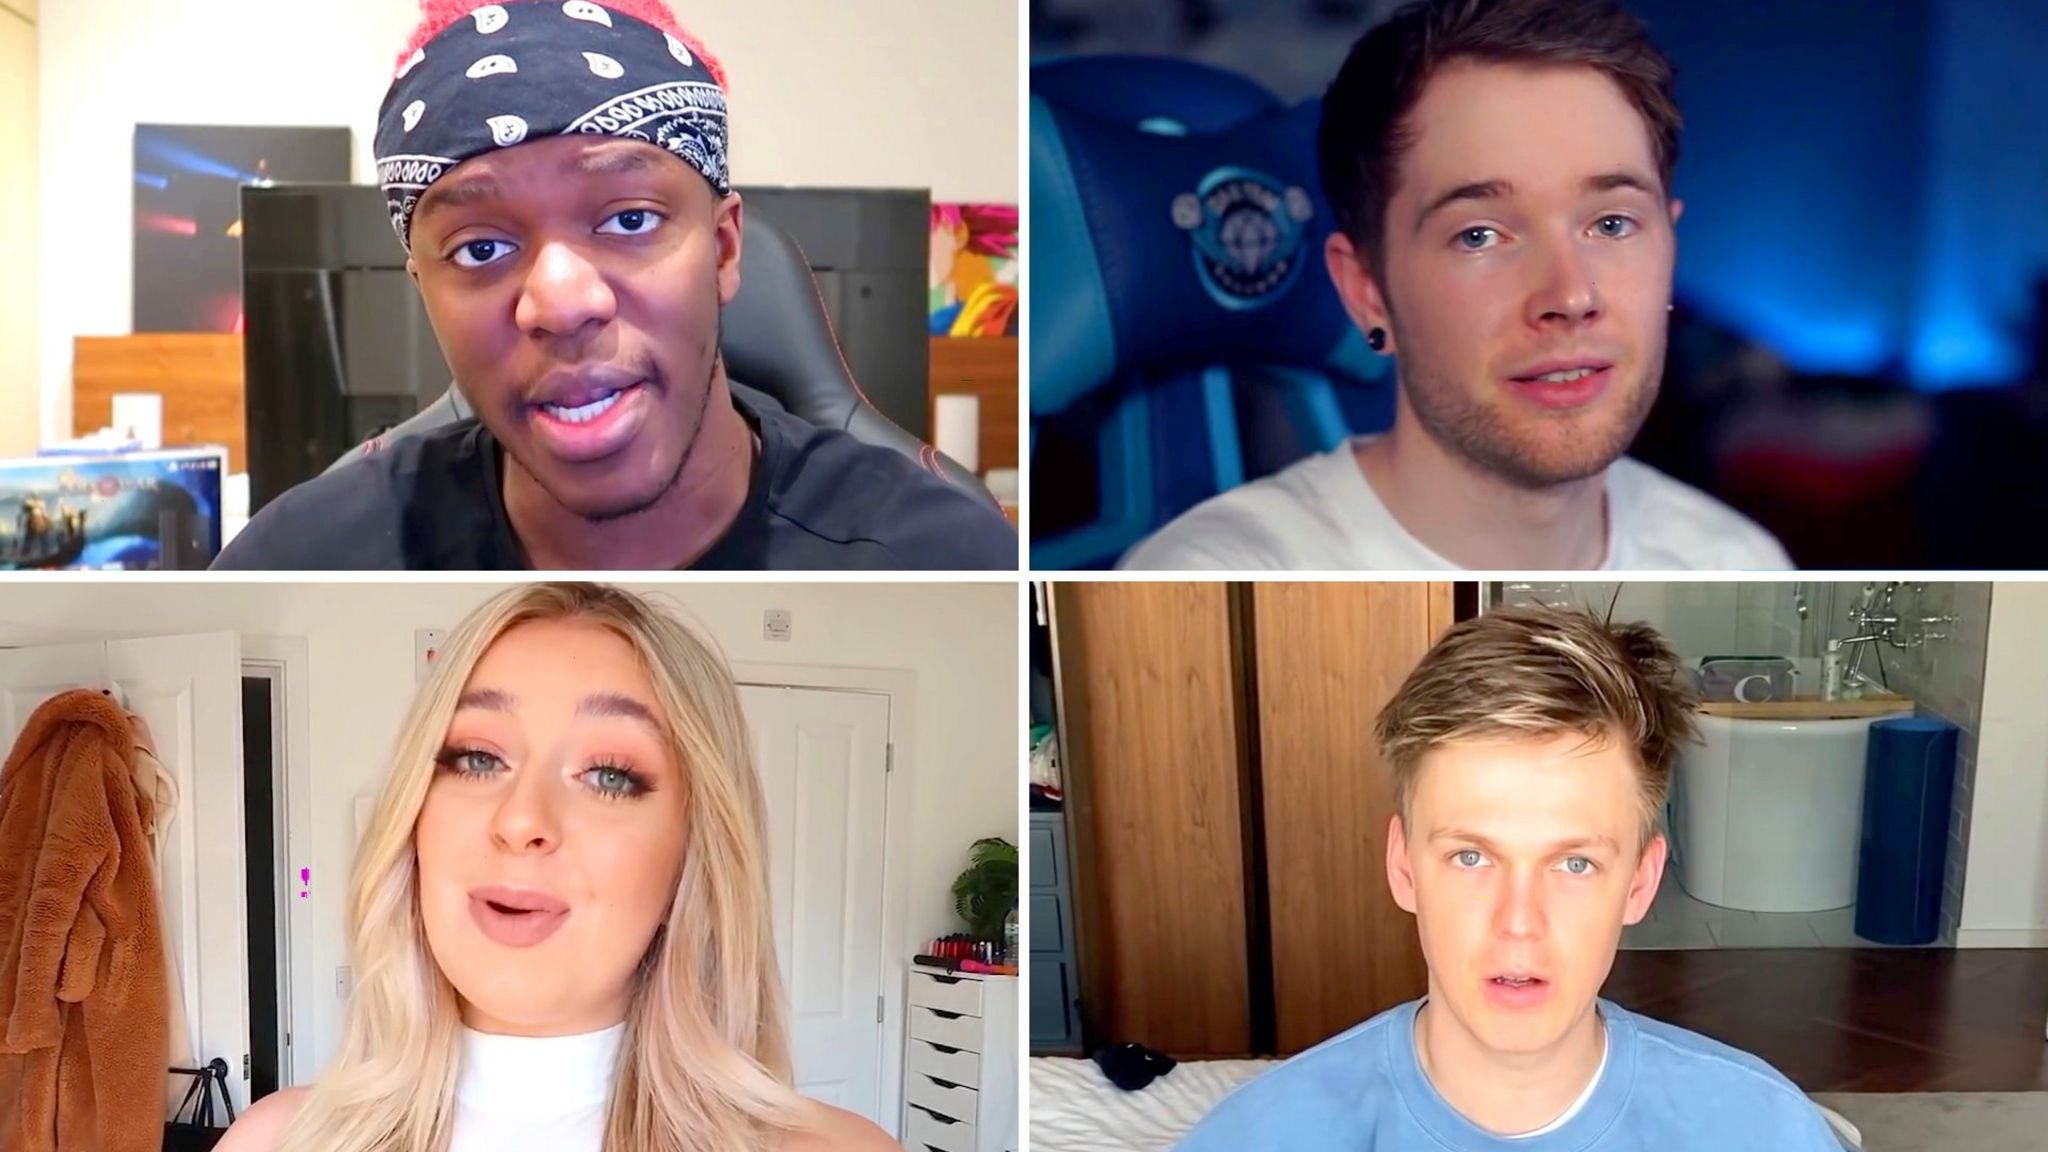 A montage of YouTube stars